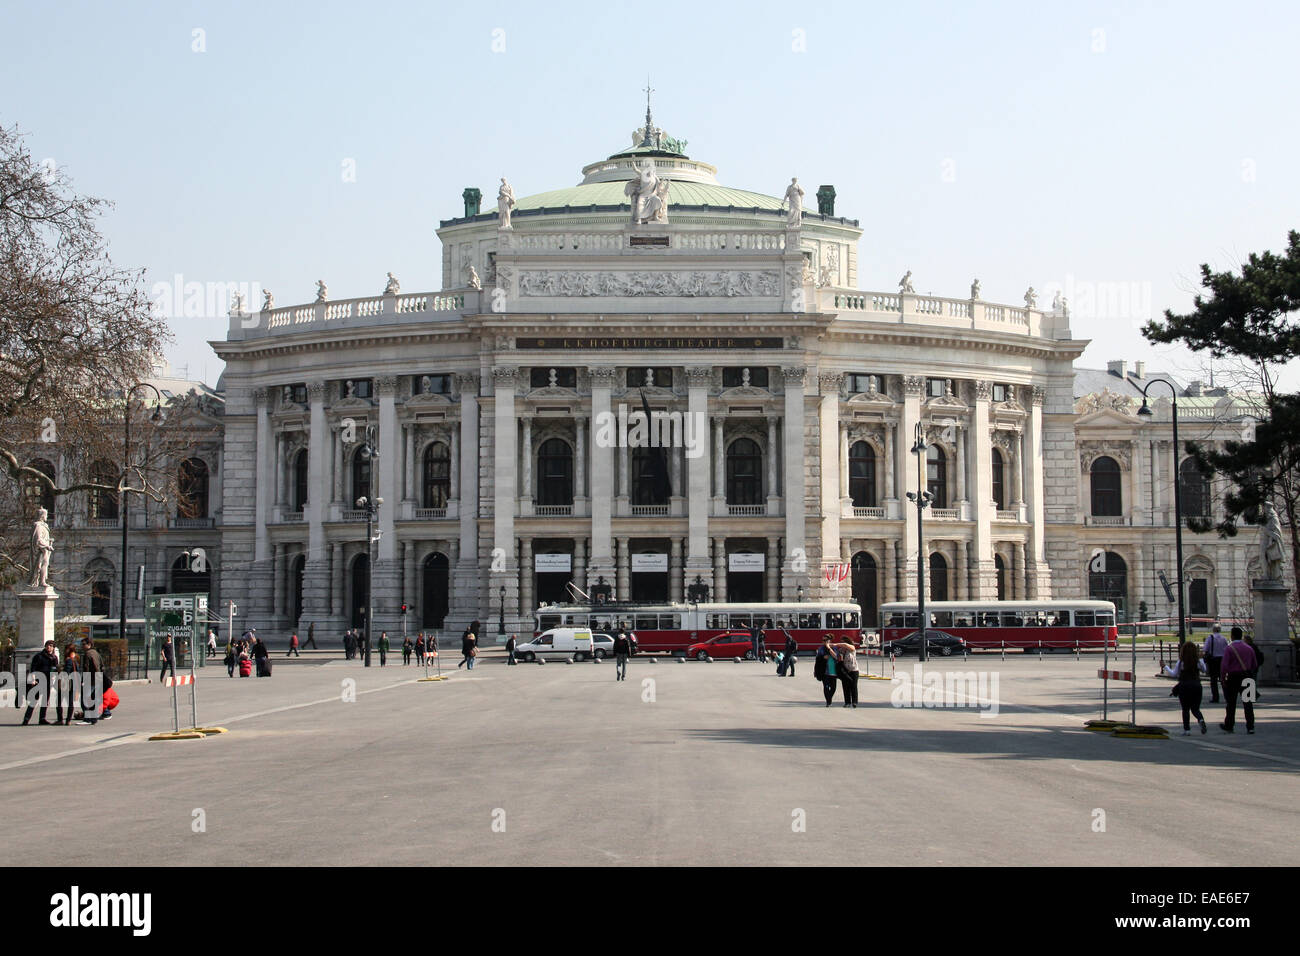 Austria: Burgtheater (Imperial Court Theatre), Vienna. Photo from 23. March 2012. - Stock Image